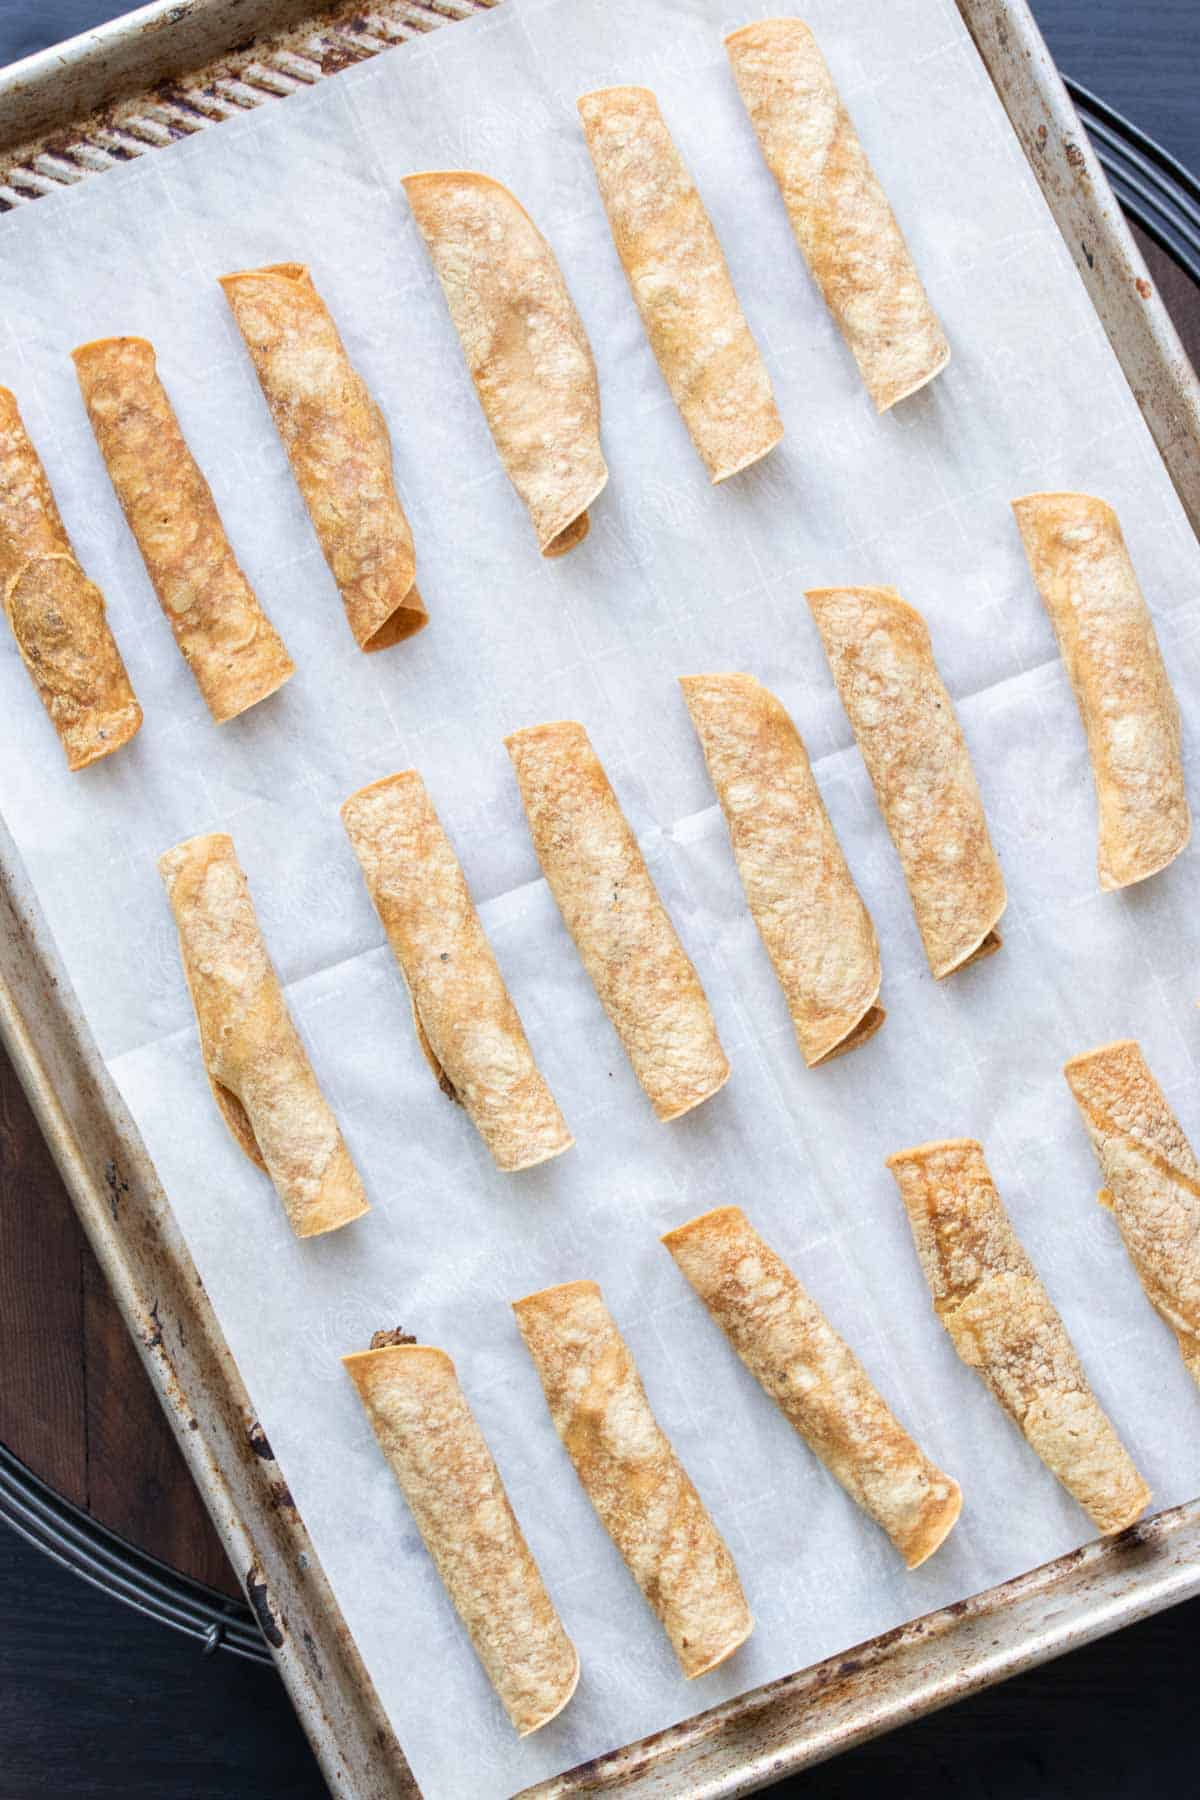 Baked taquitos on a baking sheet lined with parchment paper.